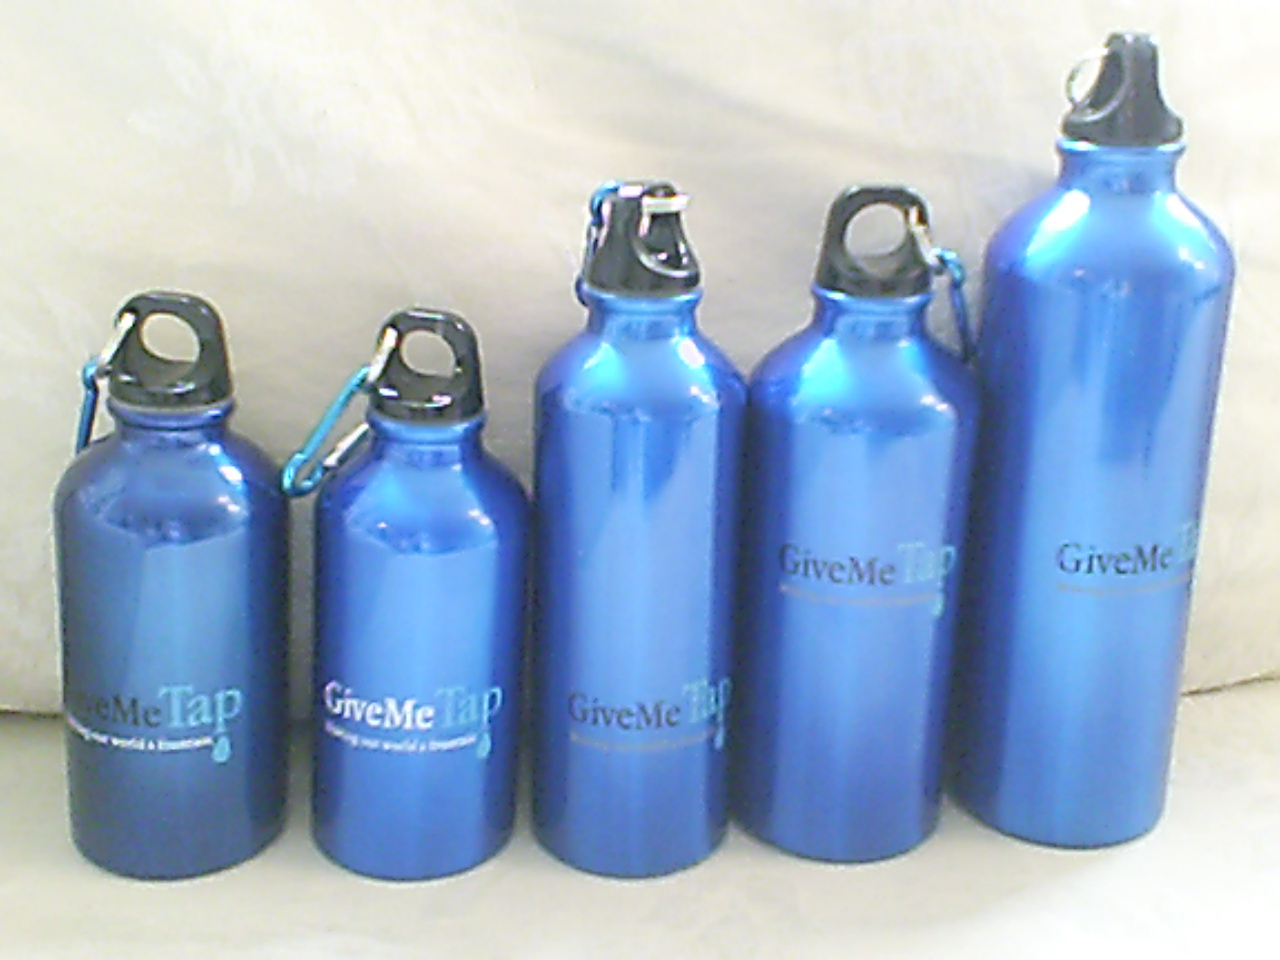 GiveMeTap - bottle family